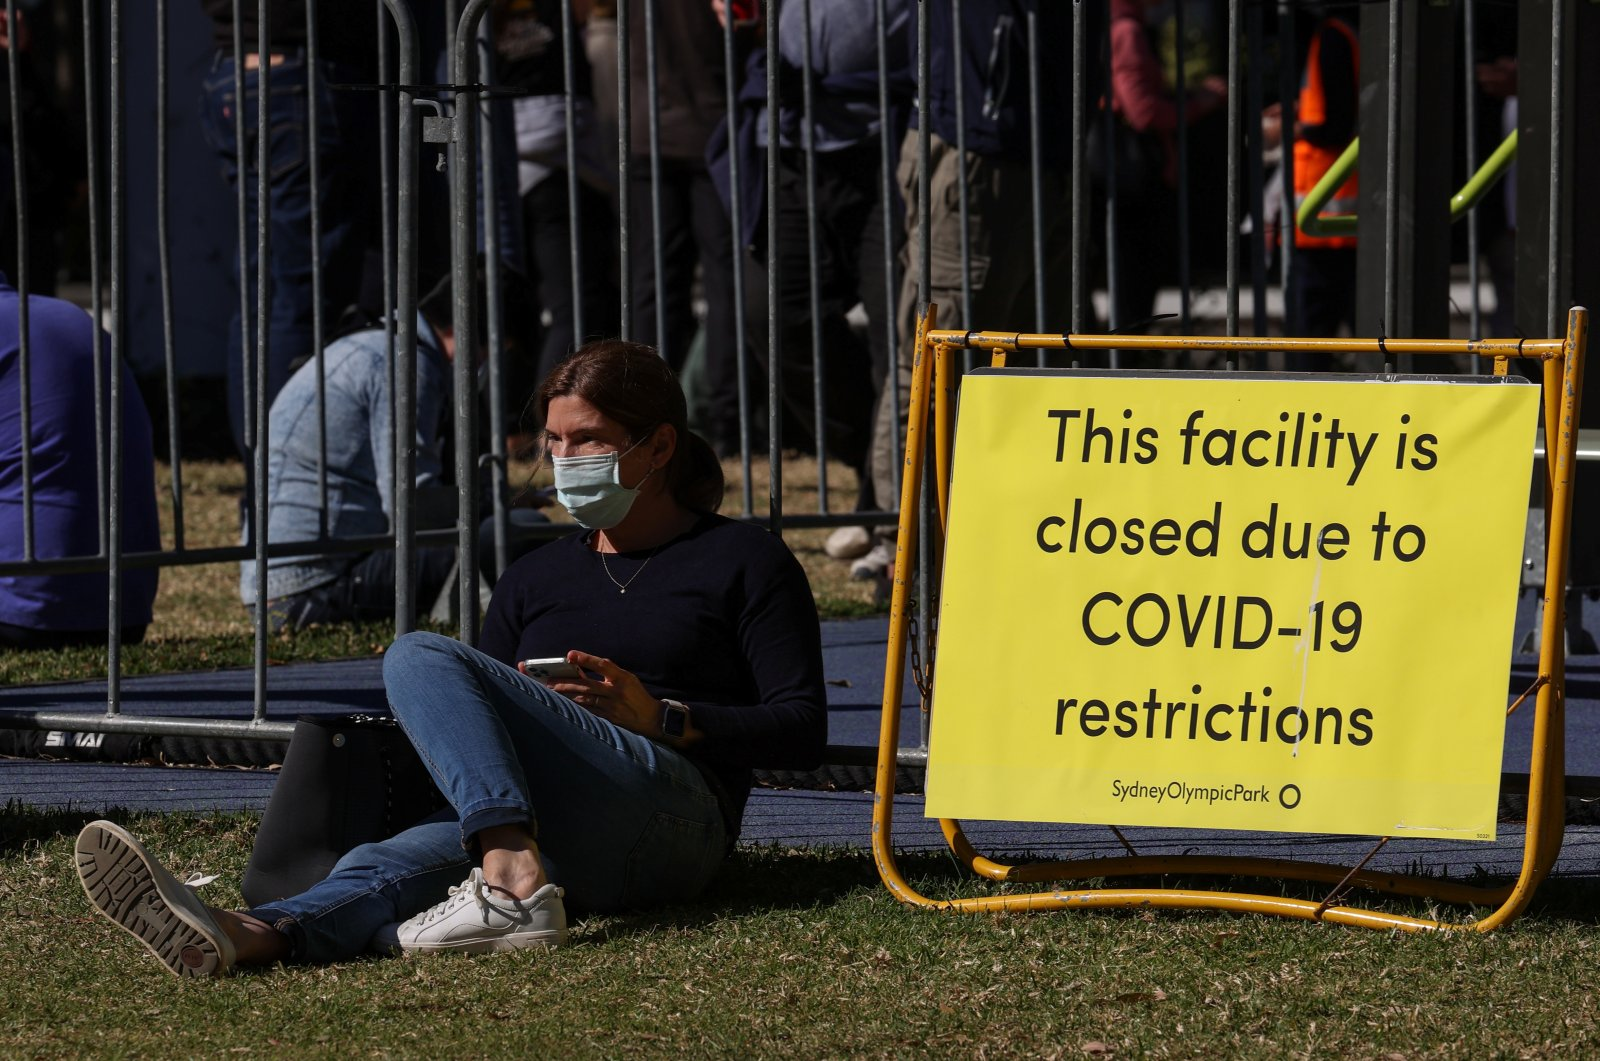 People spread out in a park while waiting for their appointments outside a COVID-19 vaccination center at Sydney Olympic Park during a lockdown to curb the spread of an outbreak in Sydney, Australia, Aug. 16, 2021. (Reuters Photo)